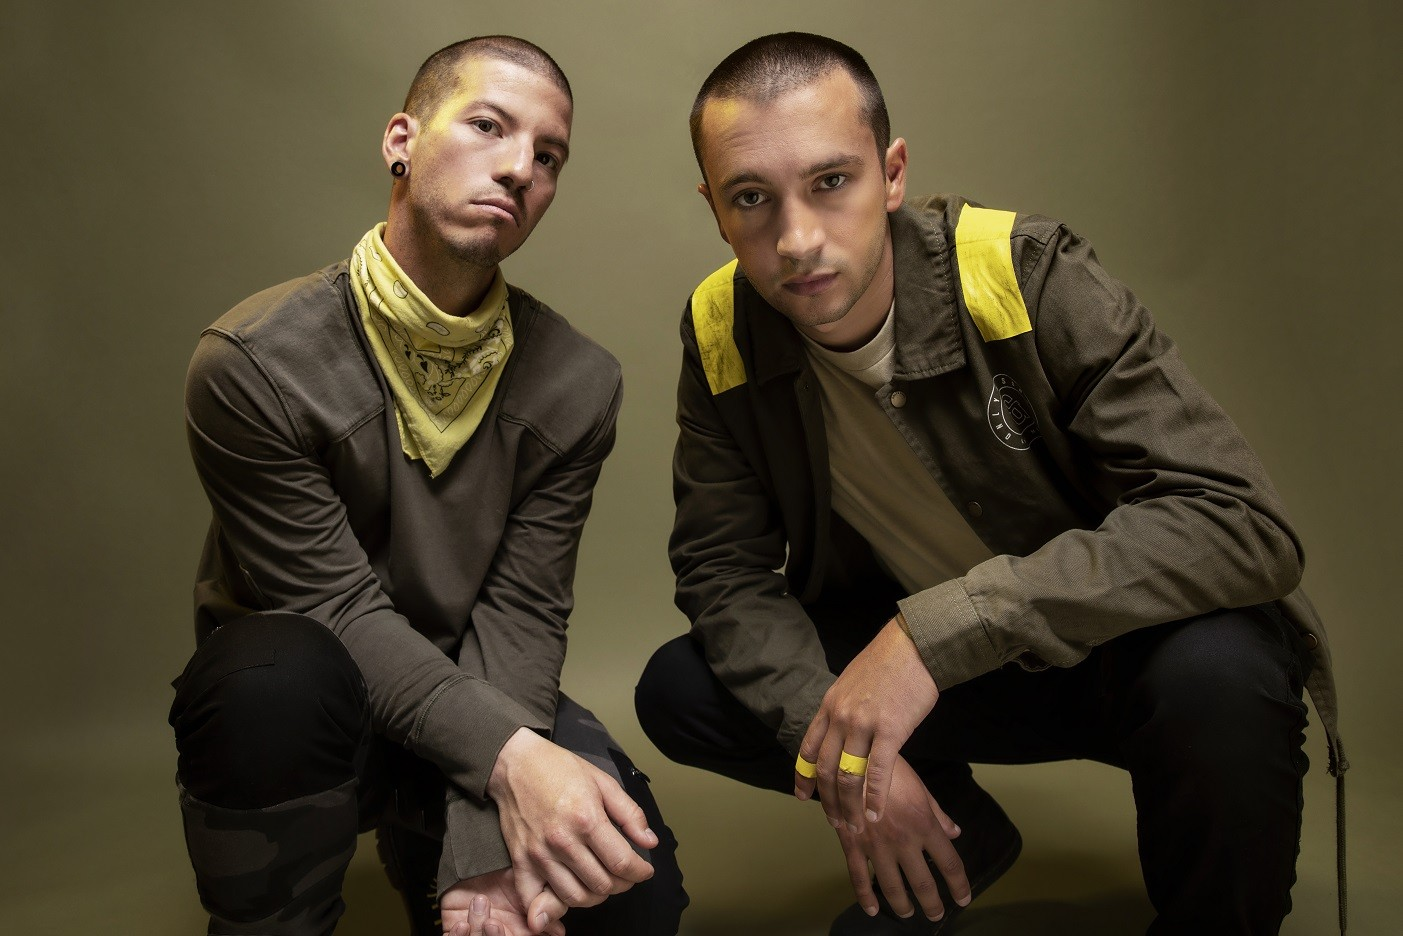 20 One Pilots Heathens twenty one pilots may not be for you (because they're for